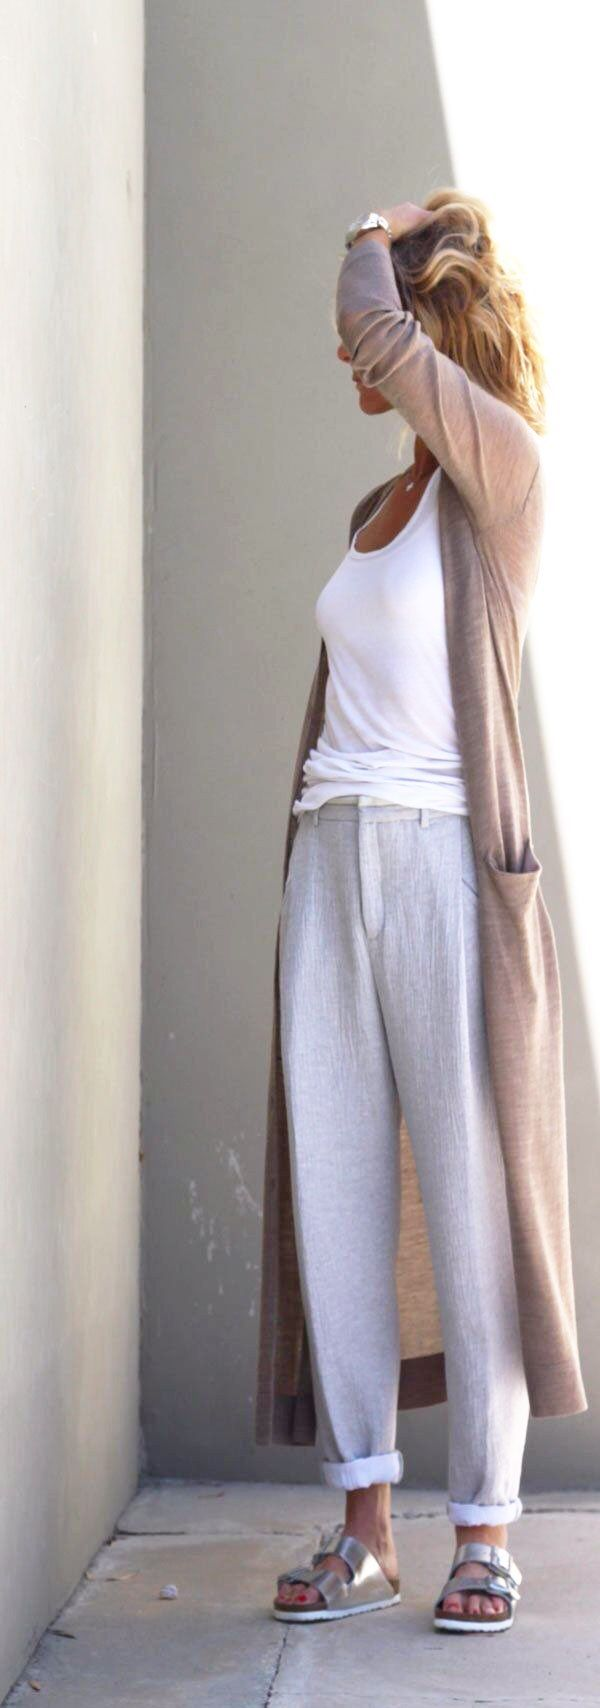 MINIMAL + CLASSIC: linen pants & silver Birks - nice but Birkenstocks are a bit TOO natural for me - prettier sandals maybe?